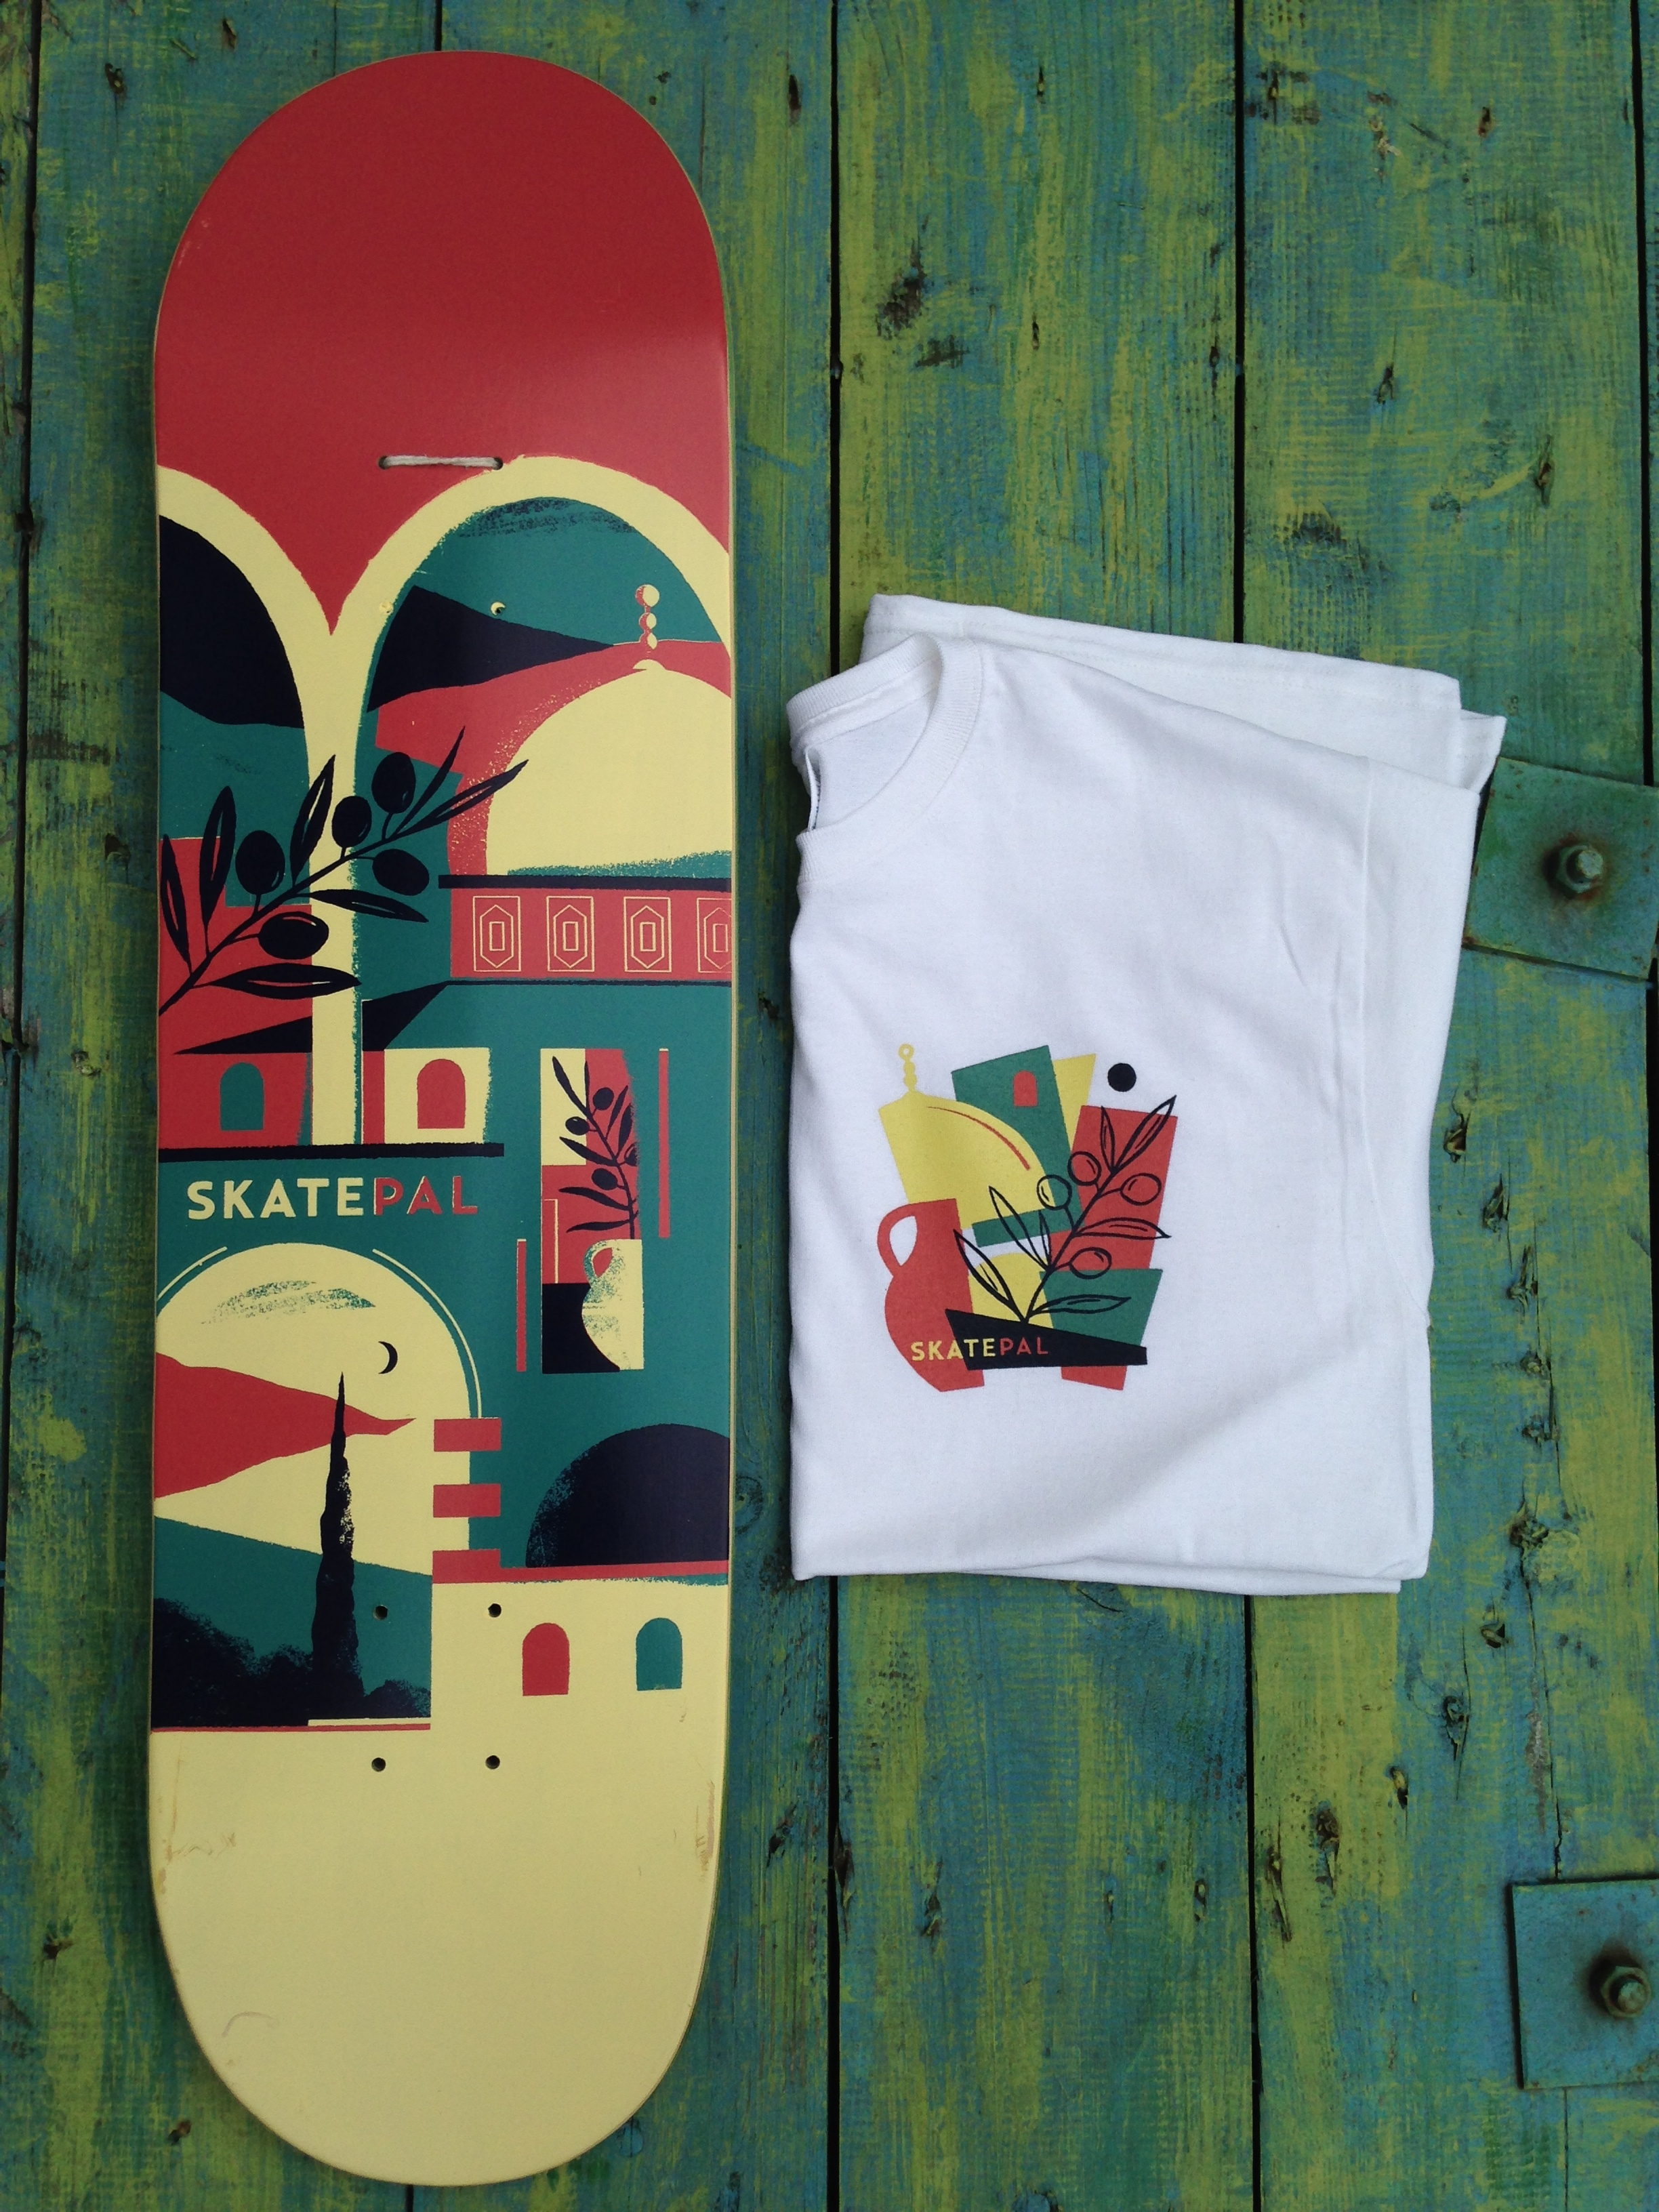 Dan's SkatePal deck and t-shirt design.